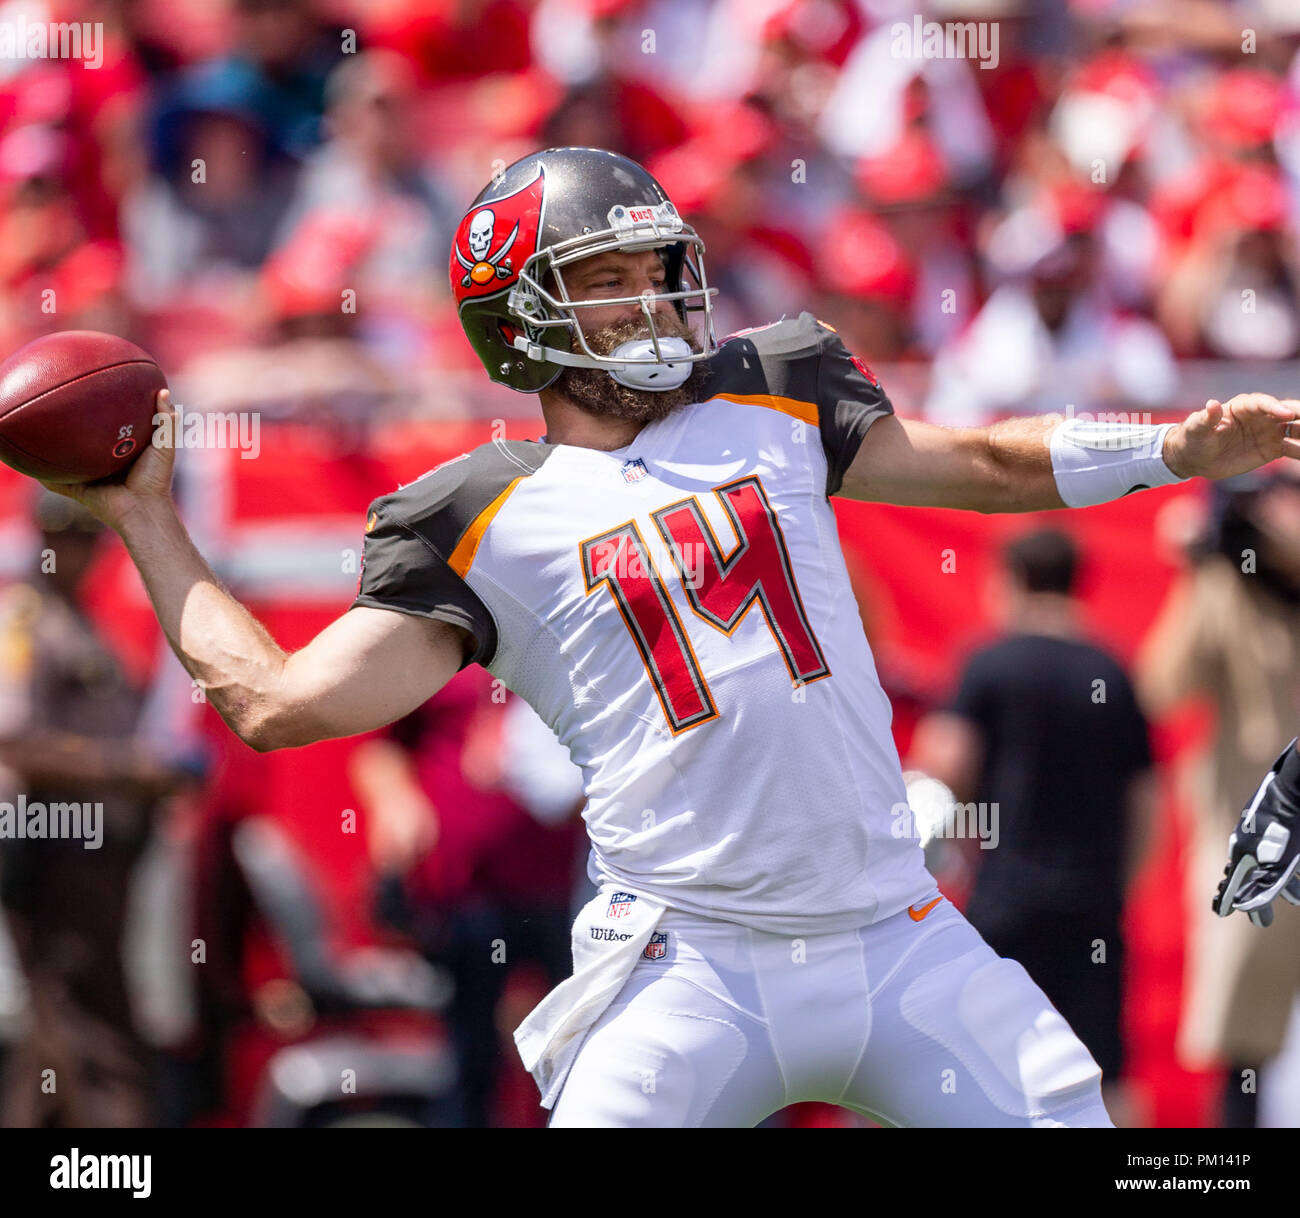 Tampa, Florida, USA. 16th Sep, 2018. Tampa Bay Buccaneers quarterback Ryan Fitzpatrick (14) first play of the game, throws a pass to Tampa Bay Buccaneers wide receiver DeSean Jackson (11) for a touchdown during the game between the Philadelphia Eagles and the Tampa Bay Buccaneers at Raymond James Stadium in Tampa, Florida. Del Mecum/CSM/Alamy Live News Stock Photo